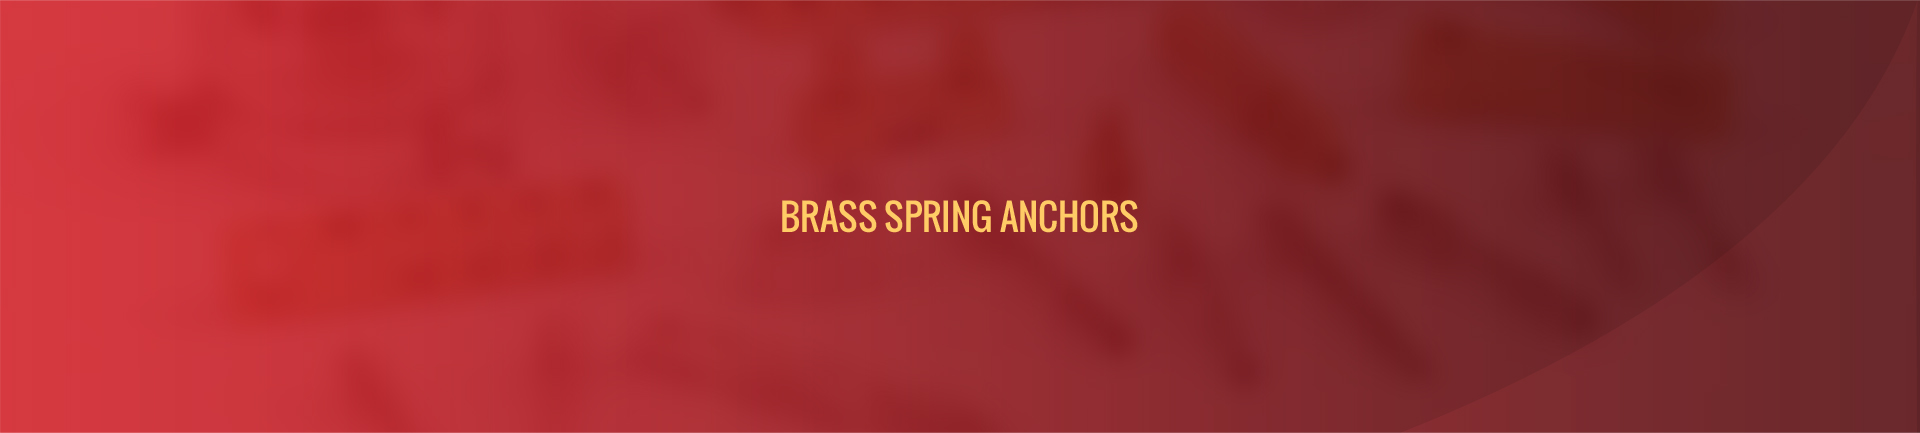 brass-spring-anchors-banner